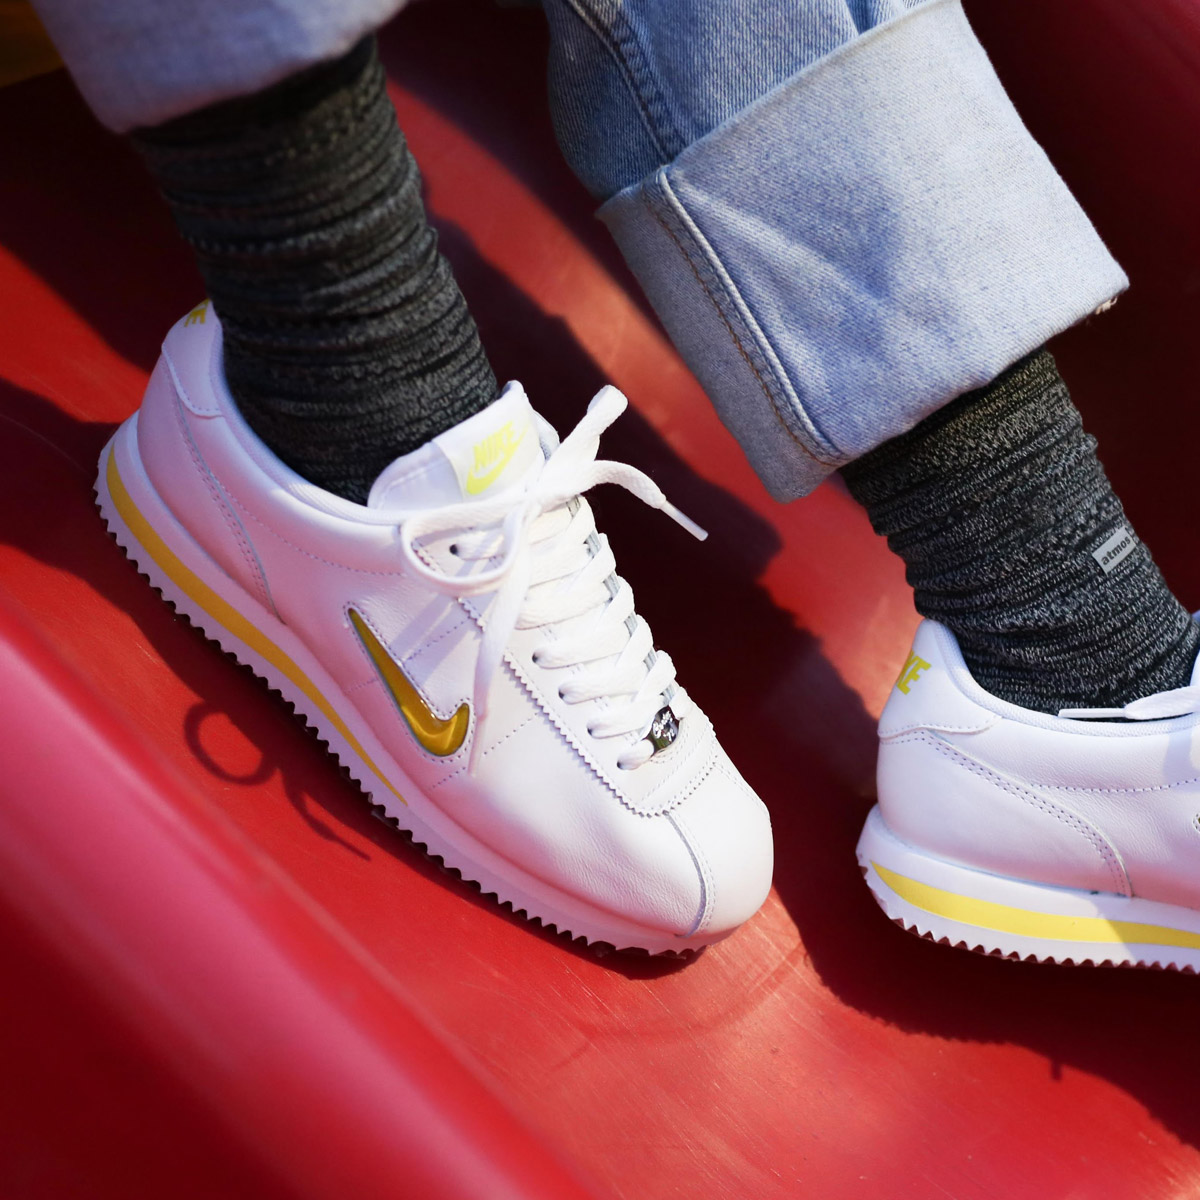 info for e9048 0915a NIKE WMNS CORTEZ BASIC JEWEL  18 (ナイキウィメンズコルテッツベーシックジュエル 18)  (WHITE ELECTROLIME) 18SU-S